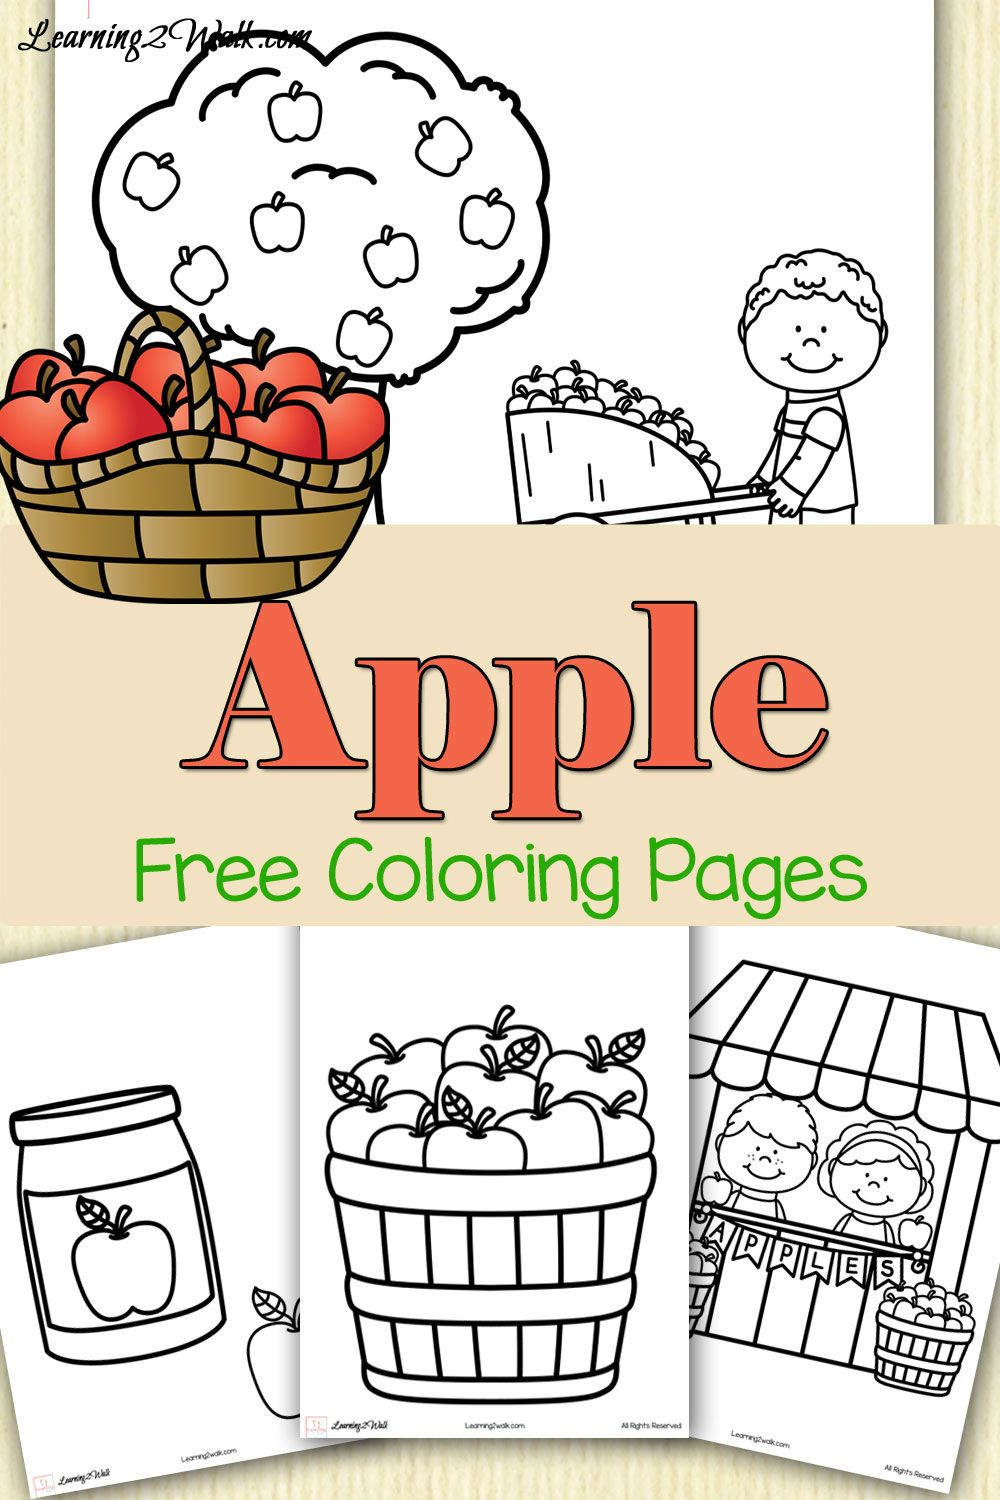 Colorful Free Apple Coloring Pages- Learning 2 Walk